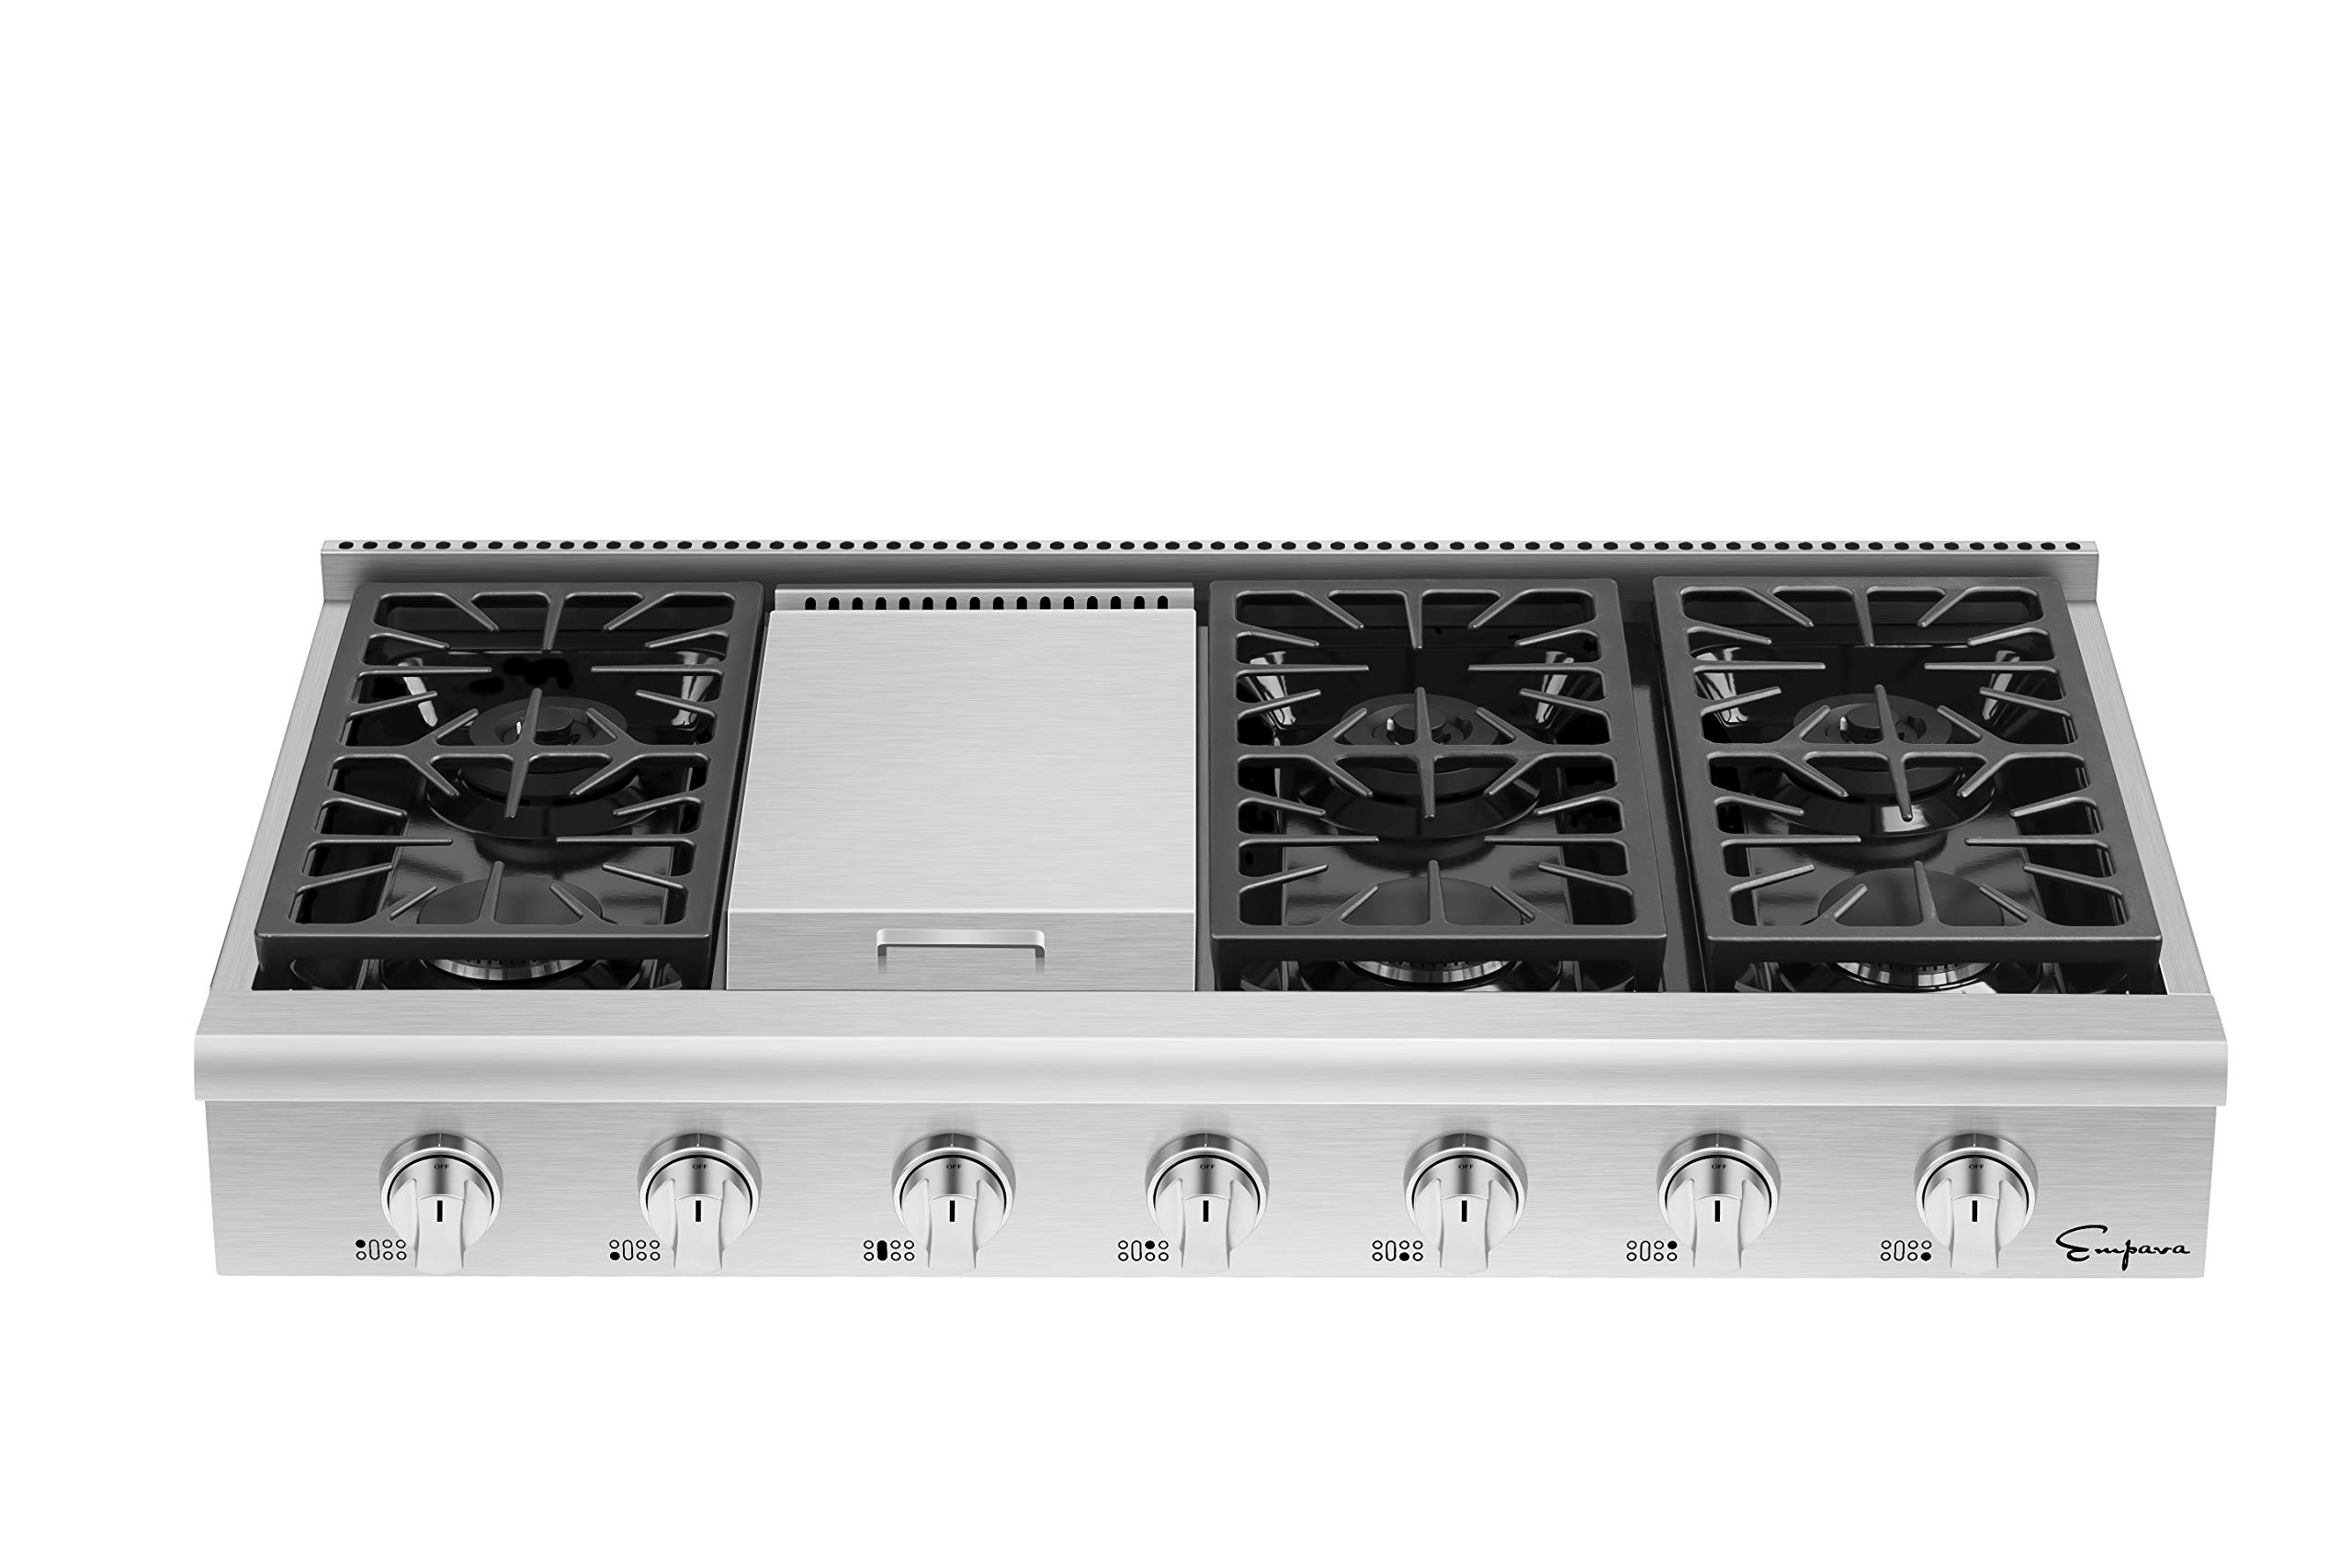 Empava 48 in. Pro-Style Professional Slide-in Natural Gas Rangetop with 6 Deep Recessed Sealed Ultra High-Low Burners-Heavy Duty Continuous Grates-Infrared Griddle in Stainless Steel, 48 Inch, Silver